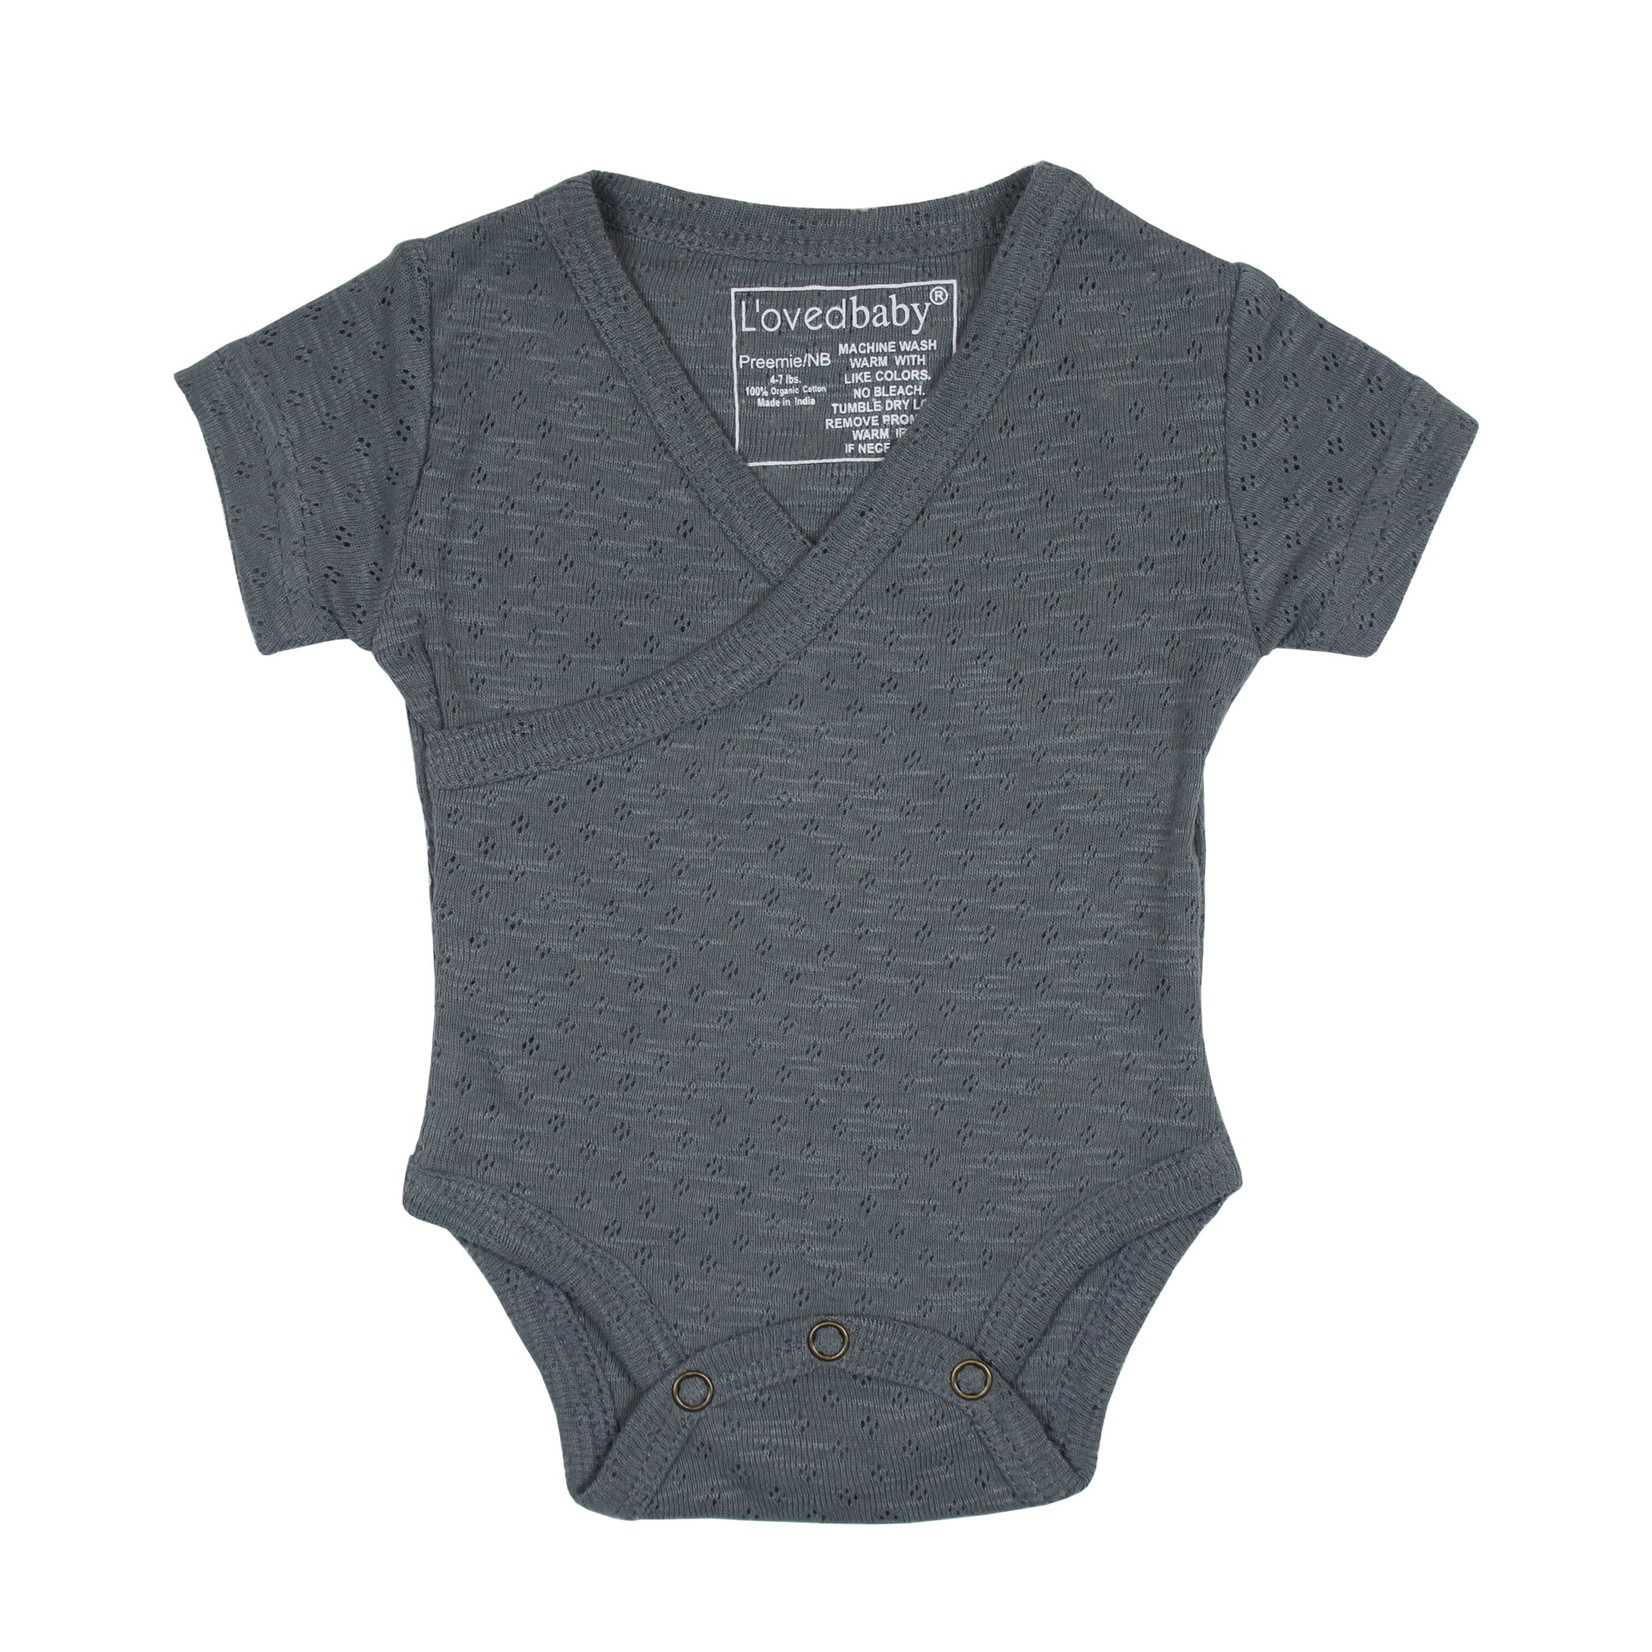 L'oved Baby Pointelle Sleeve Wrap Bodysuit